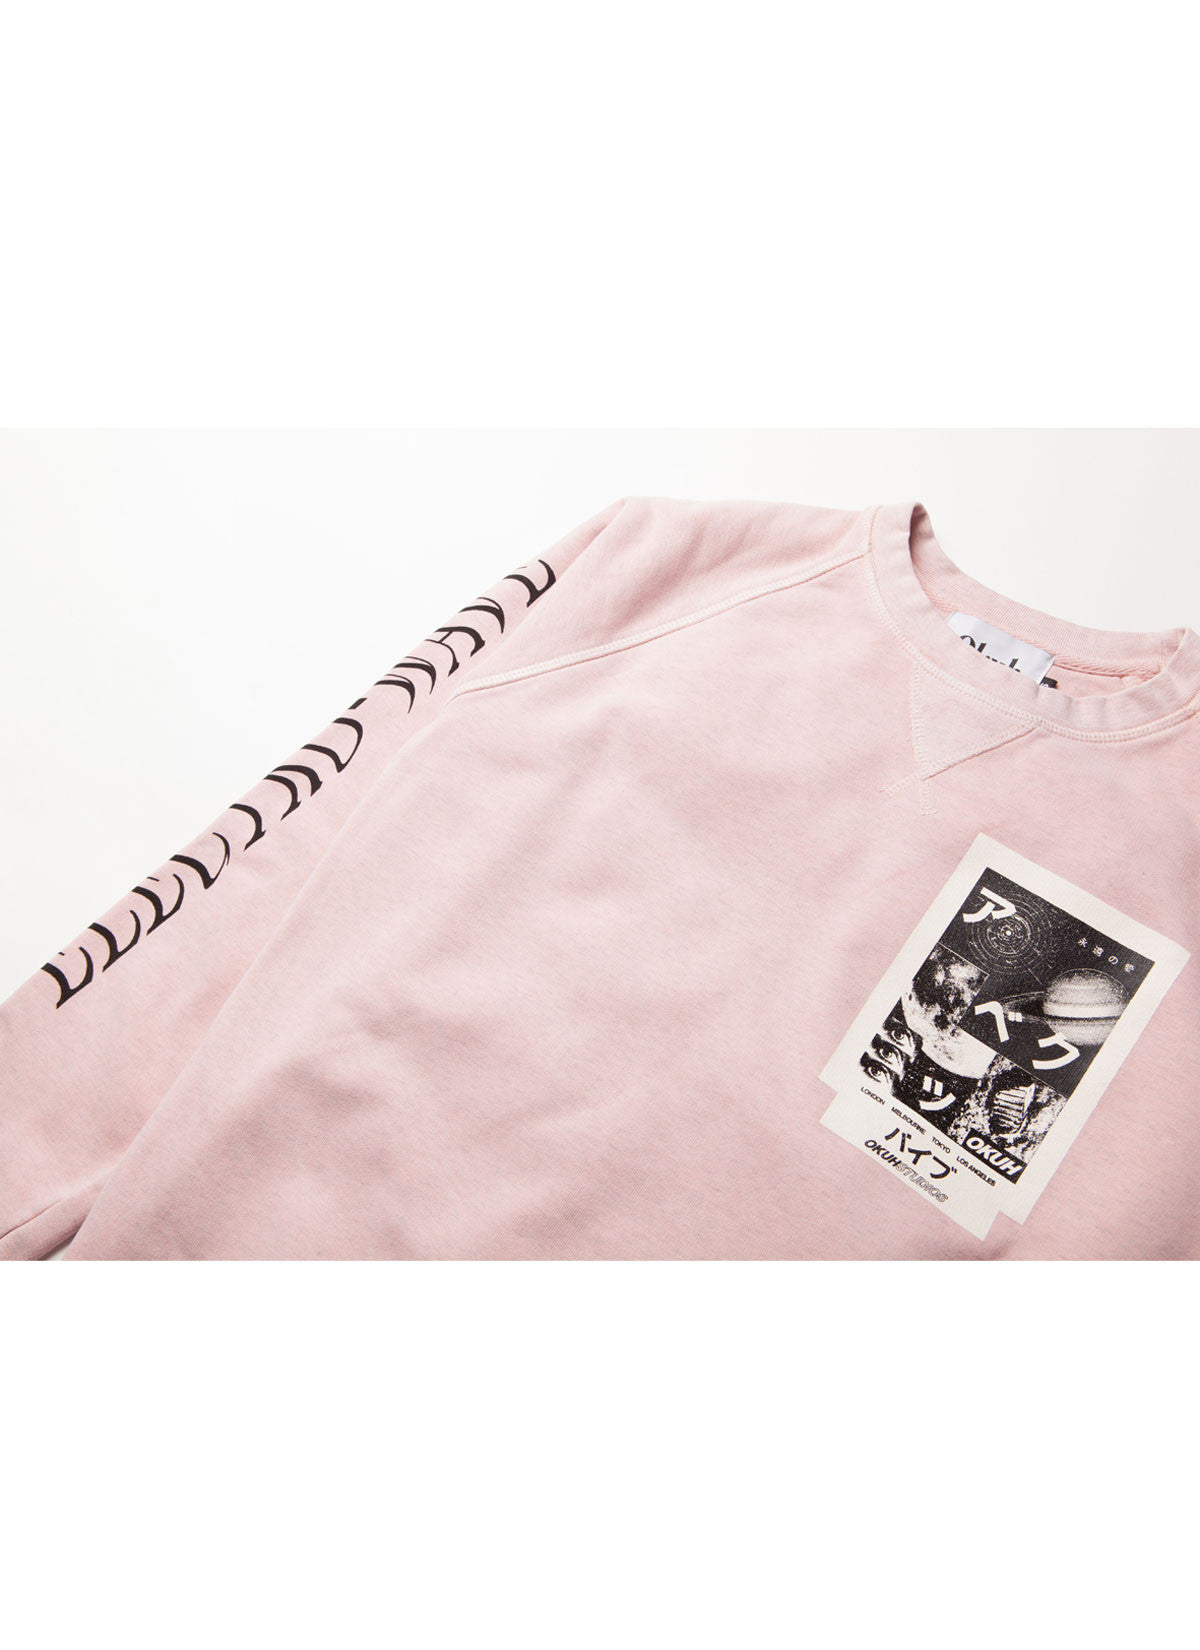 Electrowave Pink Sweatshirt by Okuh Studios, mens streetwear fashion brand, Front close up